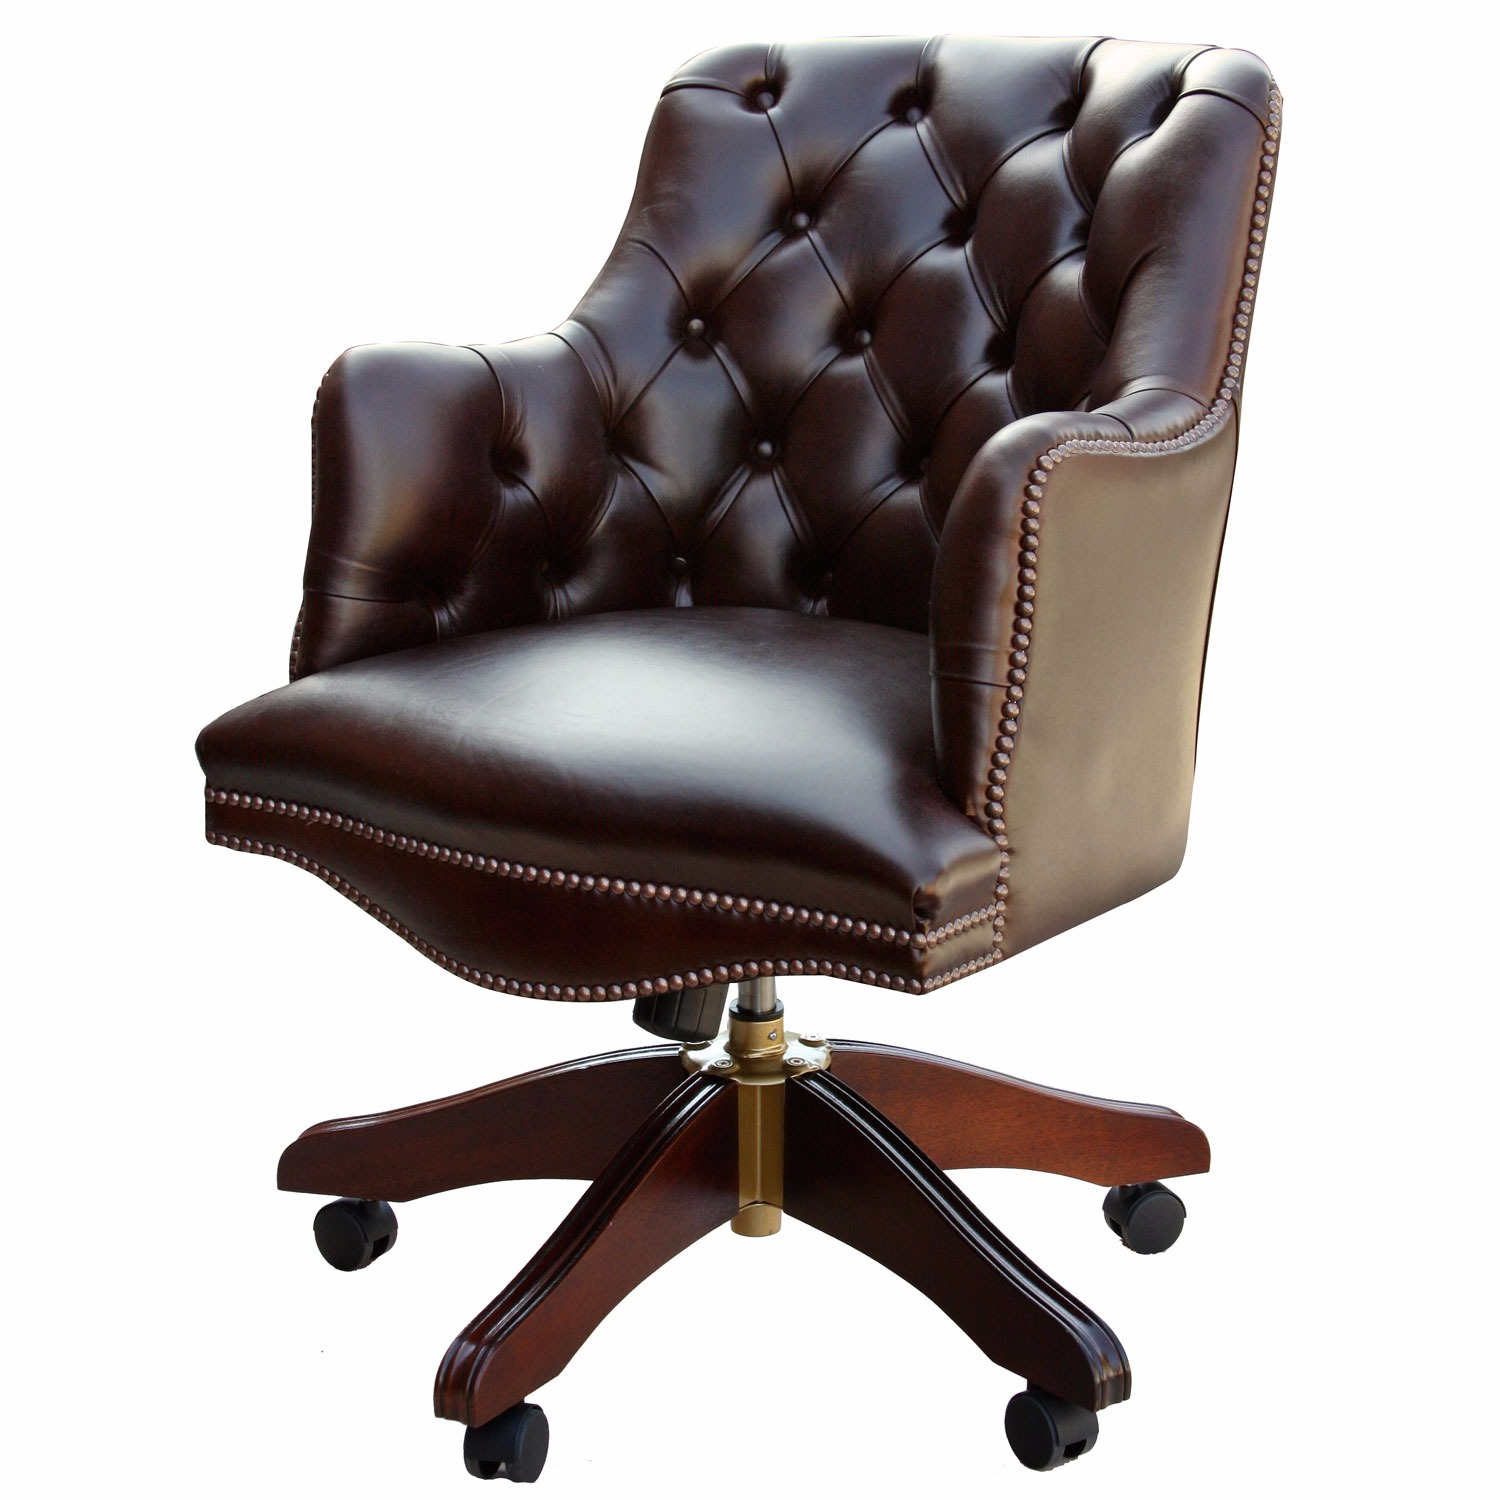 Bosun Chair Buttoned Bosuns Swivel Chair In Heritage Dark Chocolate